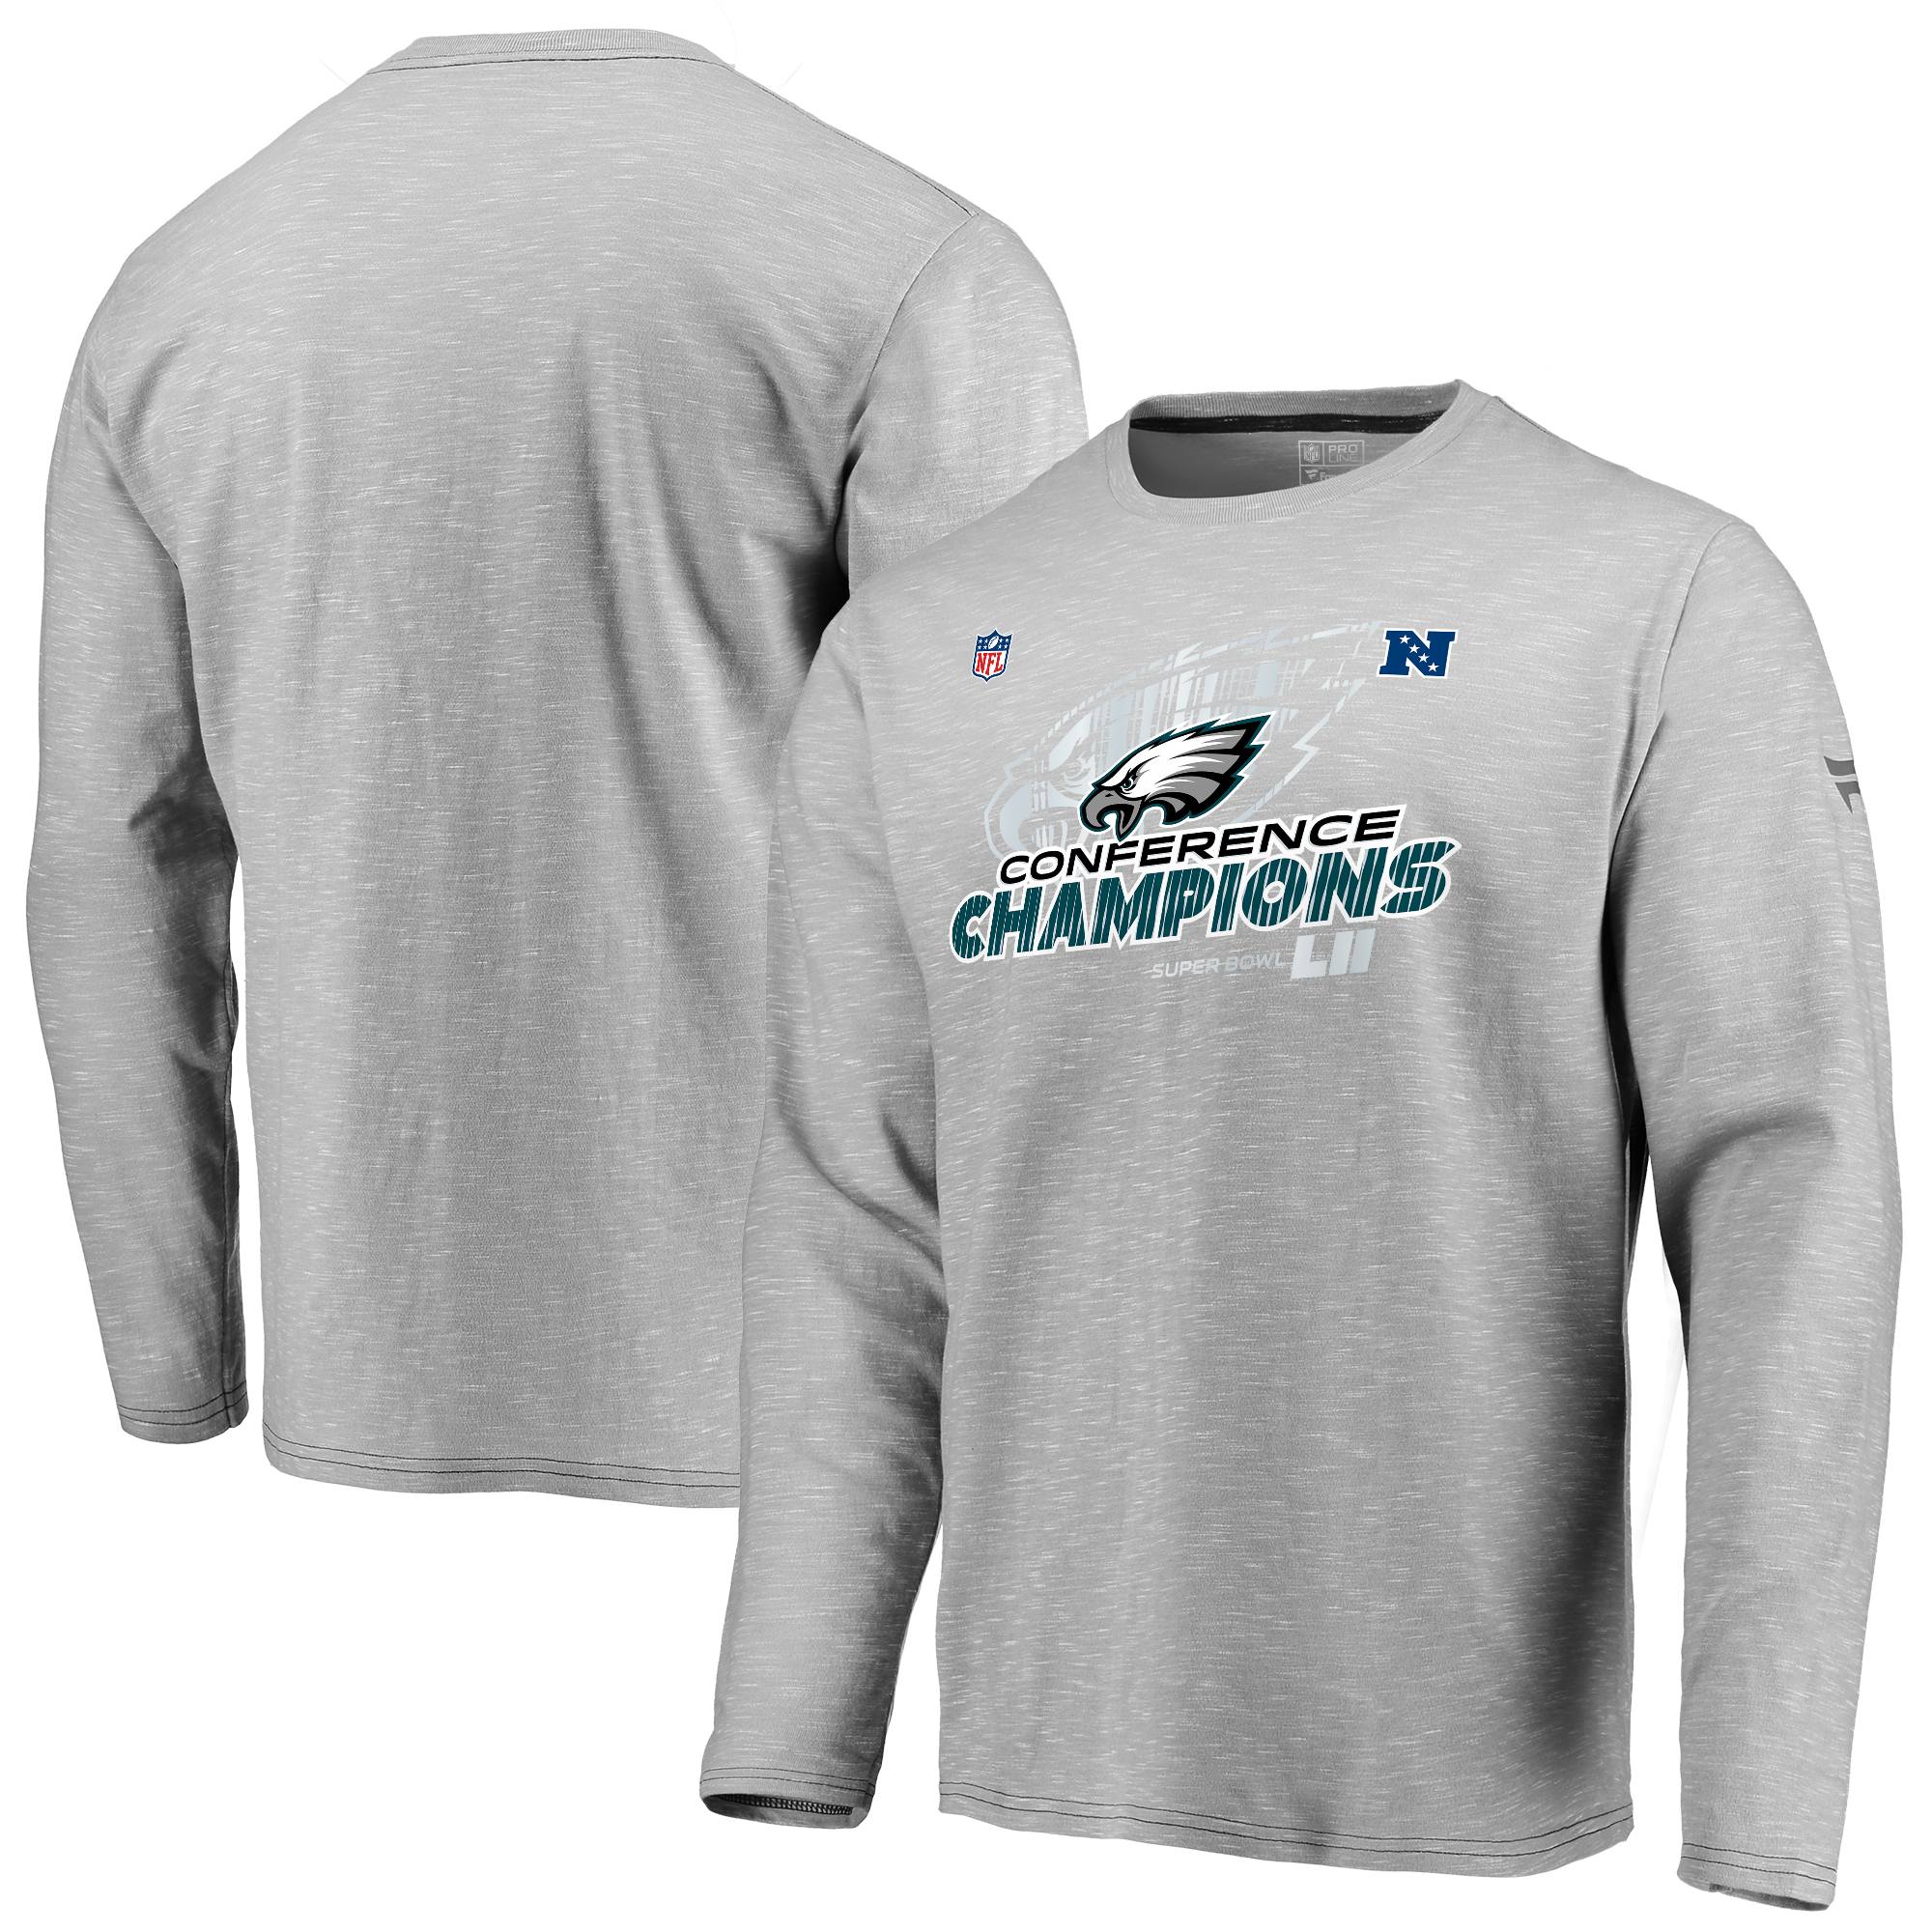 Philadelphia Eagles NFL Pro Line by Fanatics Branded 2017 NFC Champions Trophy Collection Locker Room Long Sleeve T-Shirt - Gray